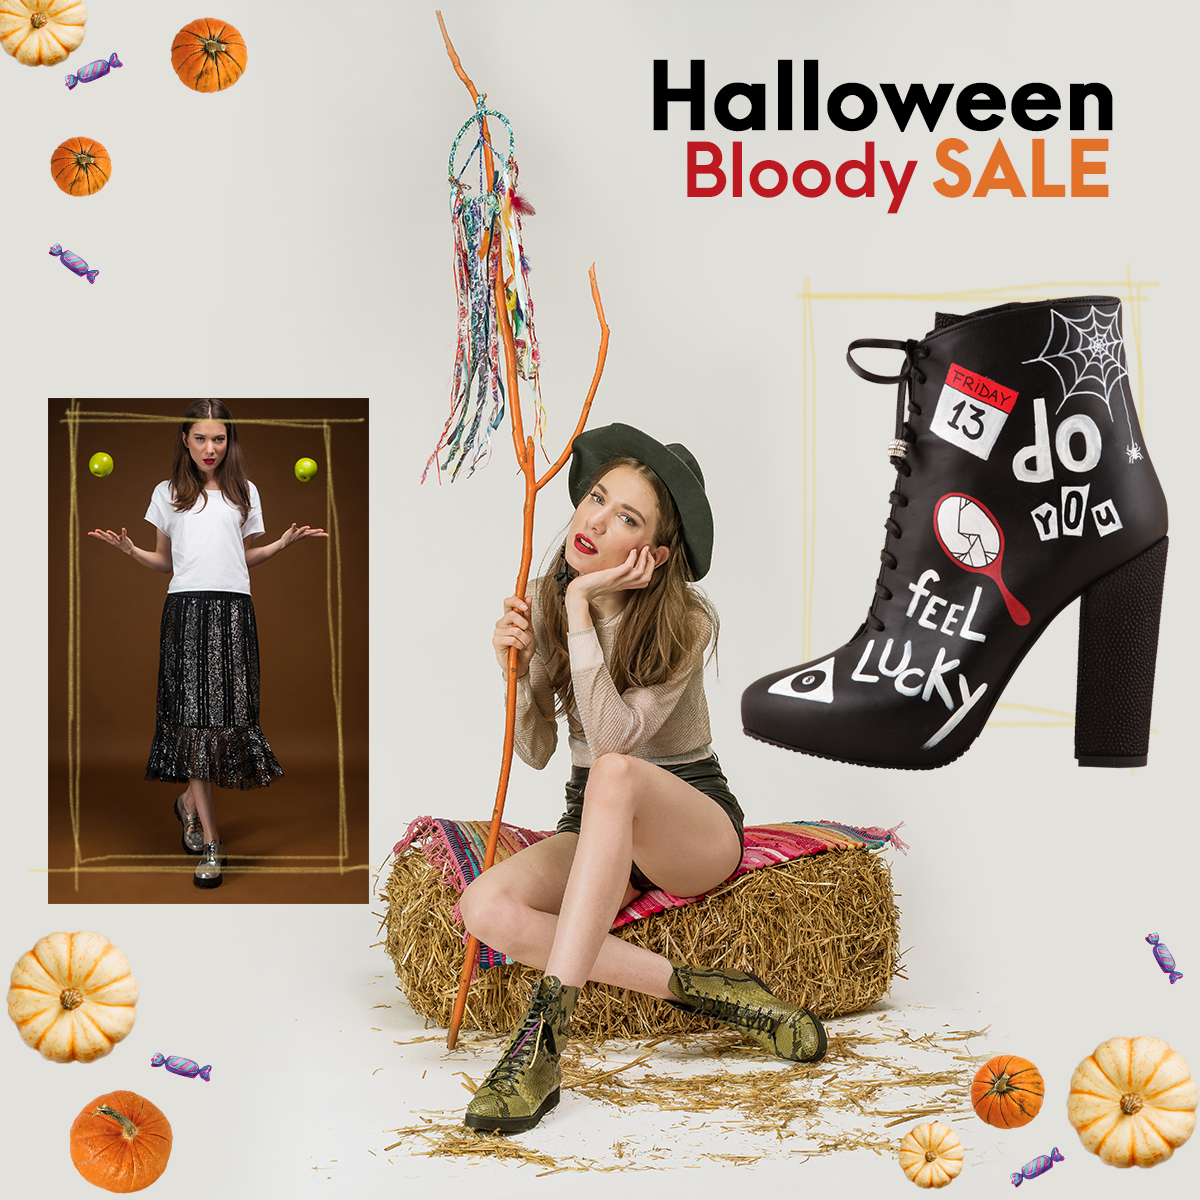 Halloween Bloody Sale